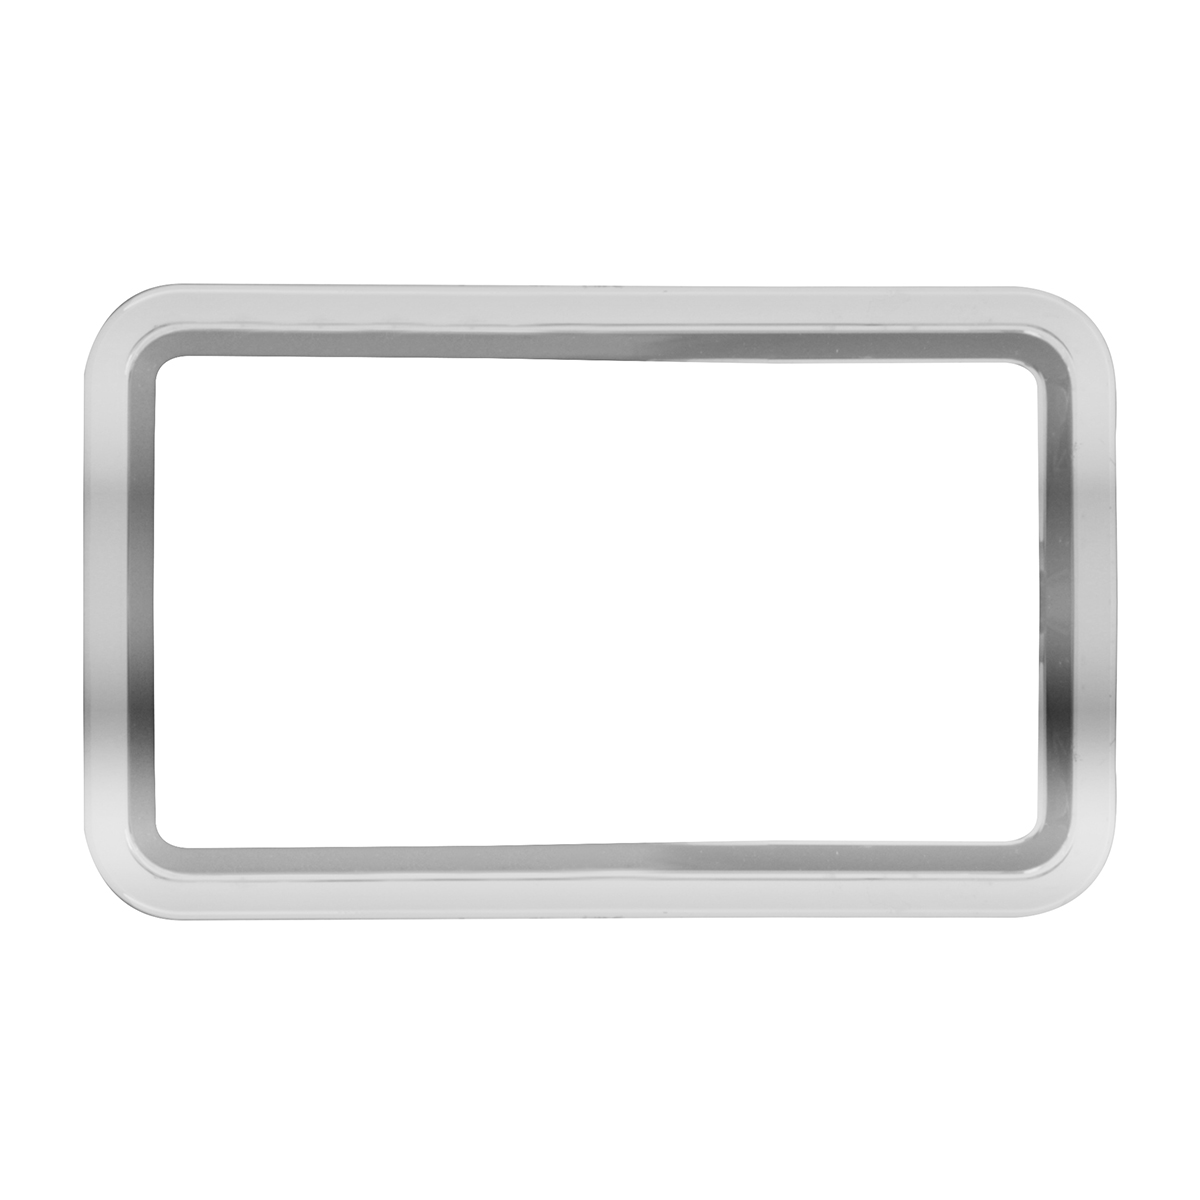 68231 A/C Vent Frame Cover for Freightliner Classic/FLDs